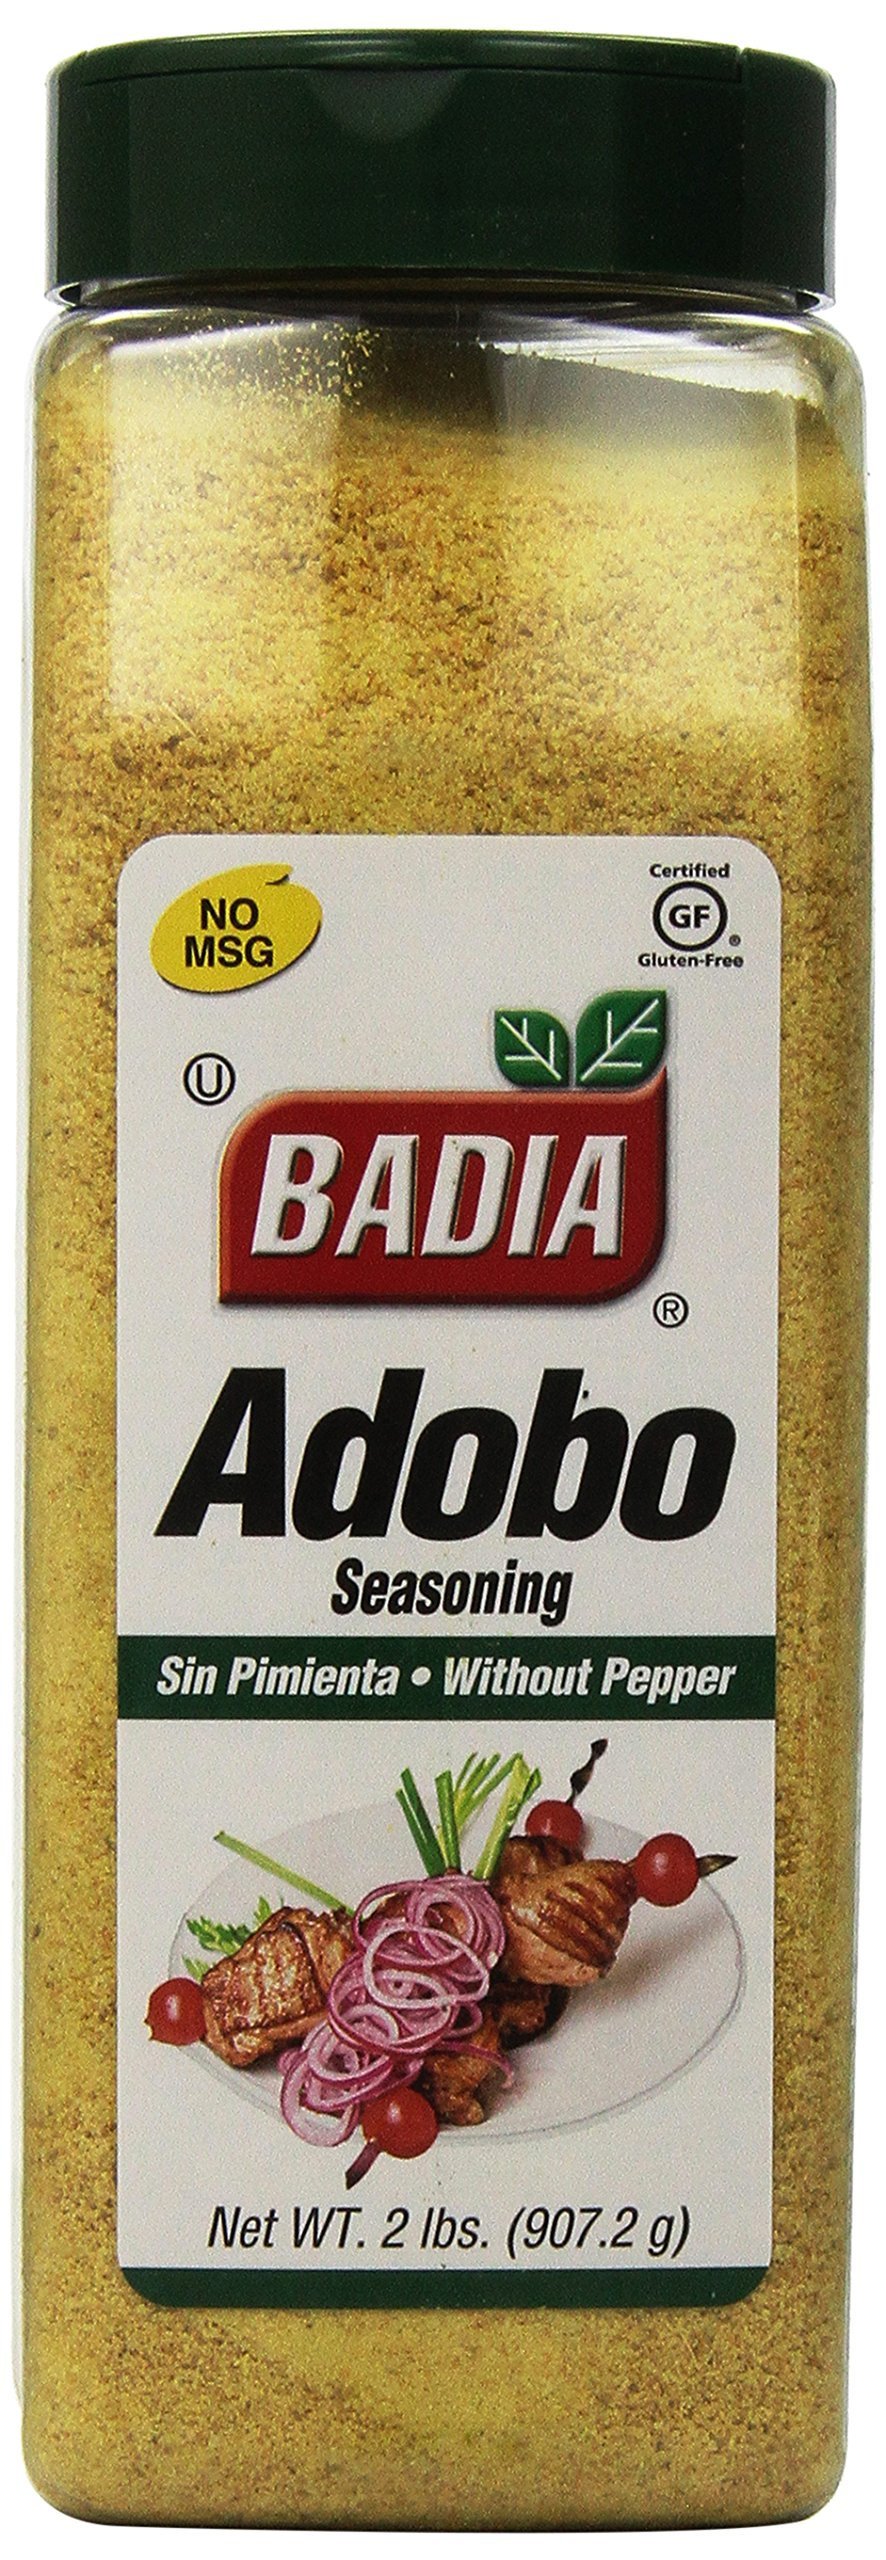 Badia Spices inc Adobo, Without Pepper, 32-Ounce (Pack of 6) by Badia (Image #1)